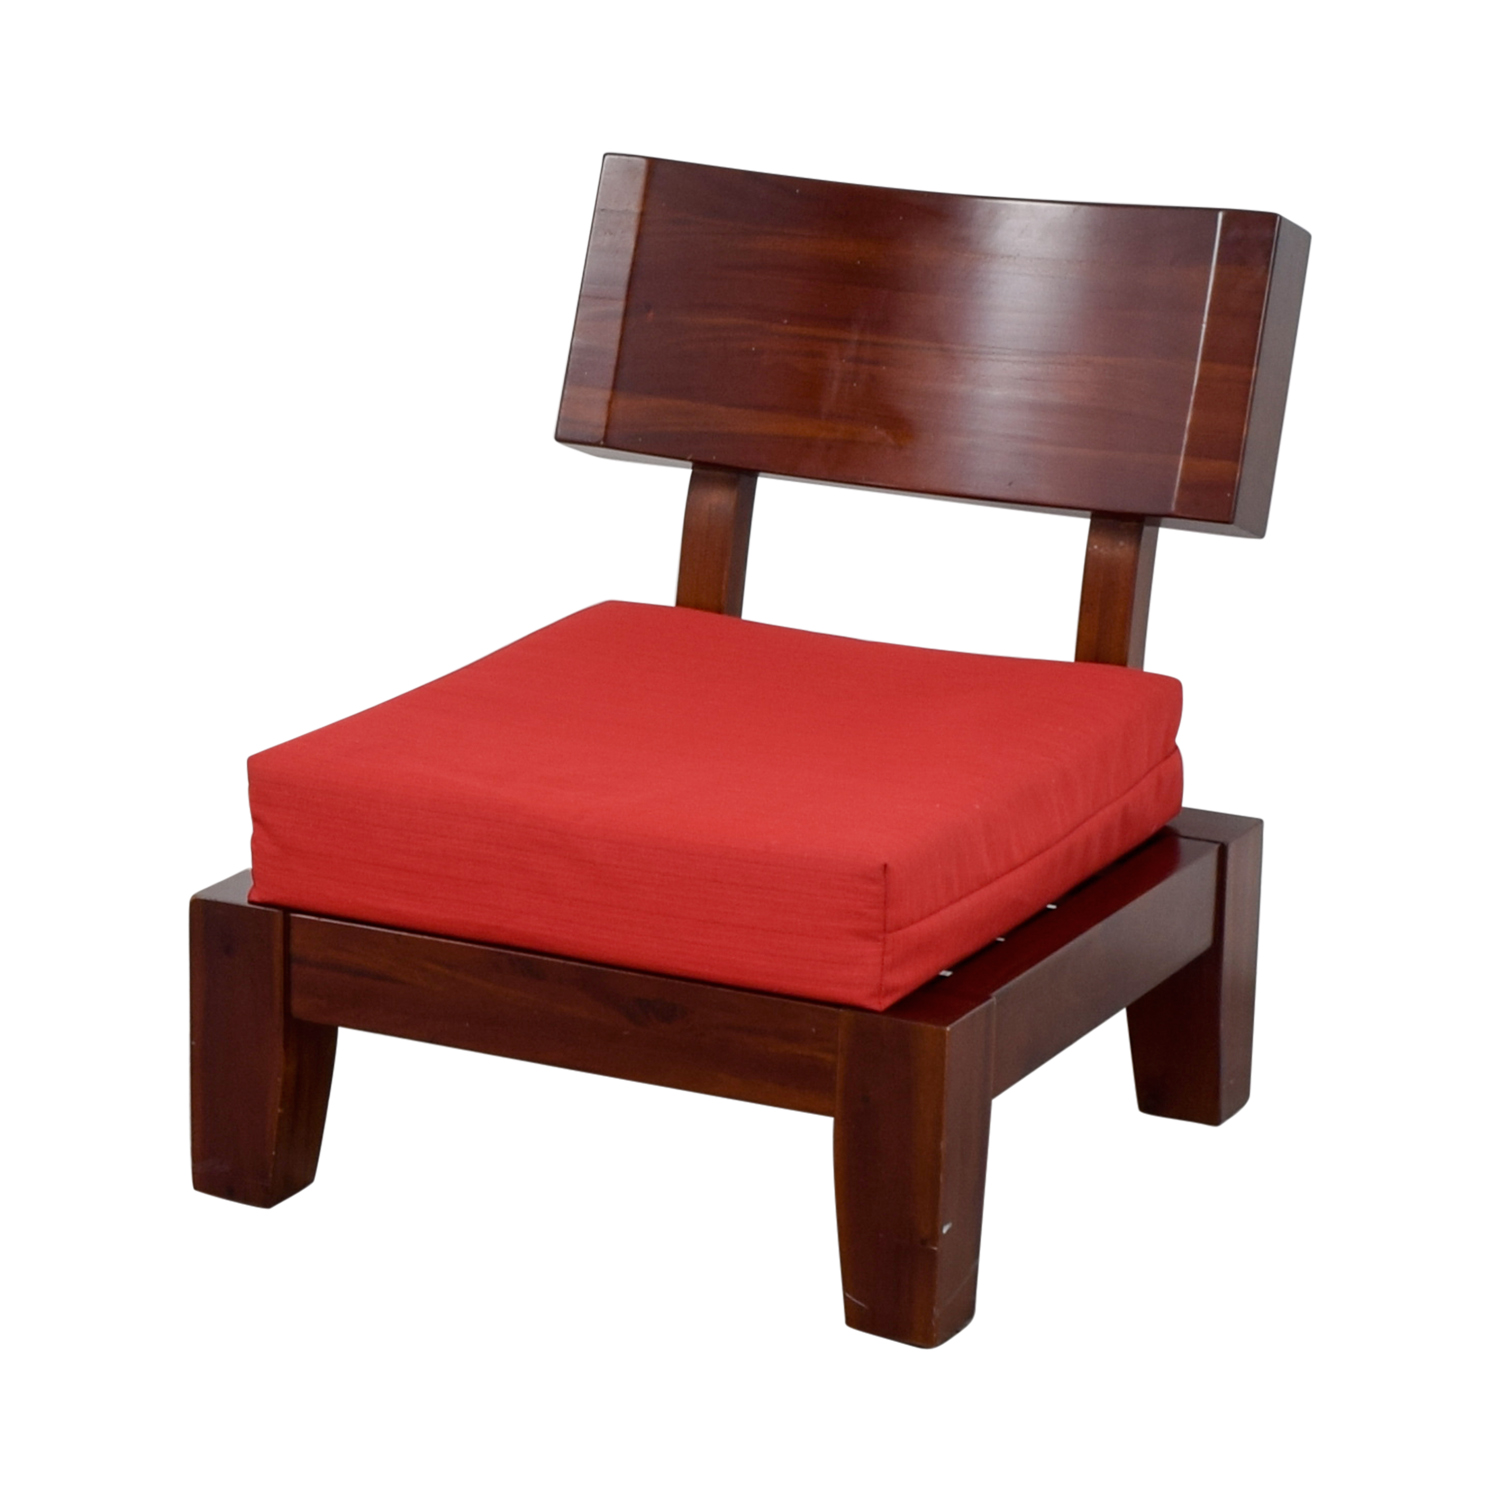 OFF Haverty Haverty Red Wood Sleeper Chair Chairs